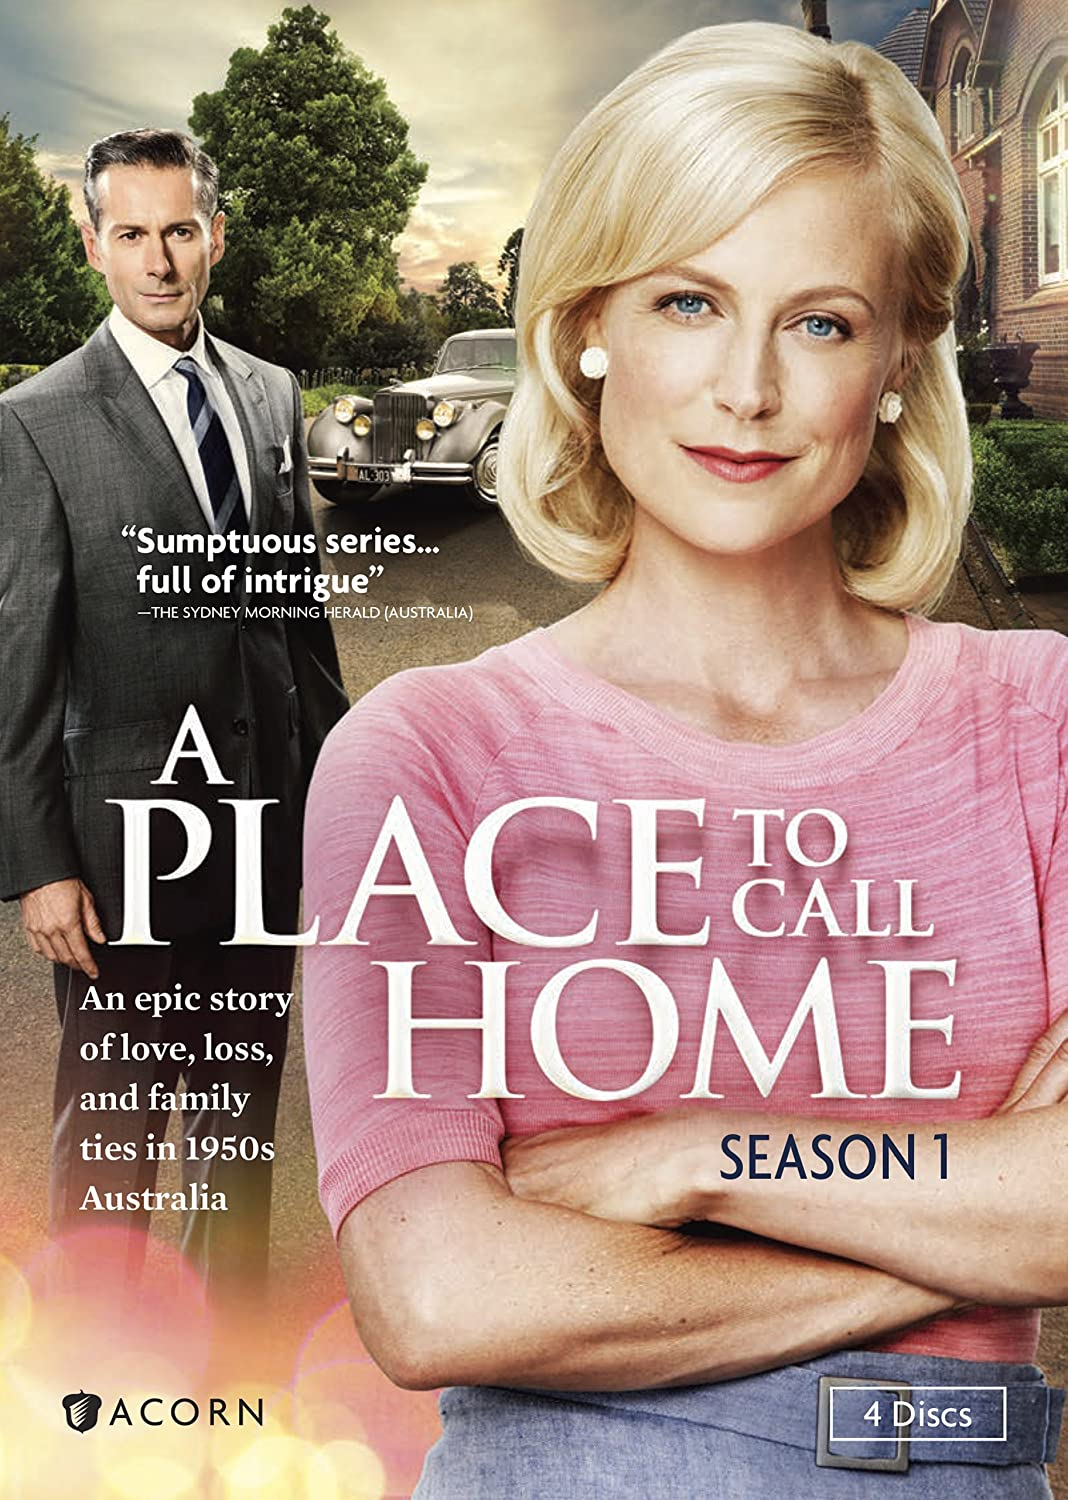 a place to call home series 1 buy online drama buy a place to call home A Place to Call Home